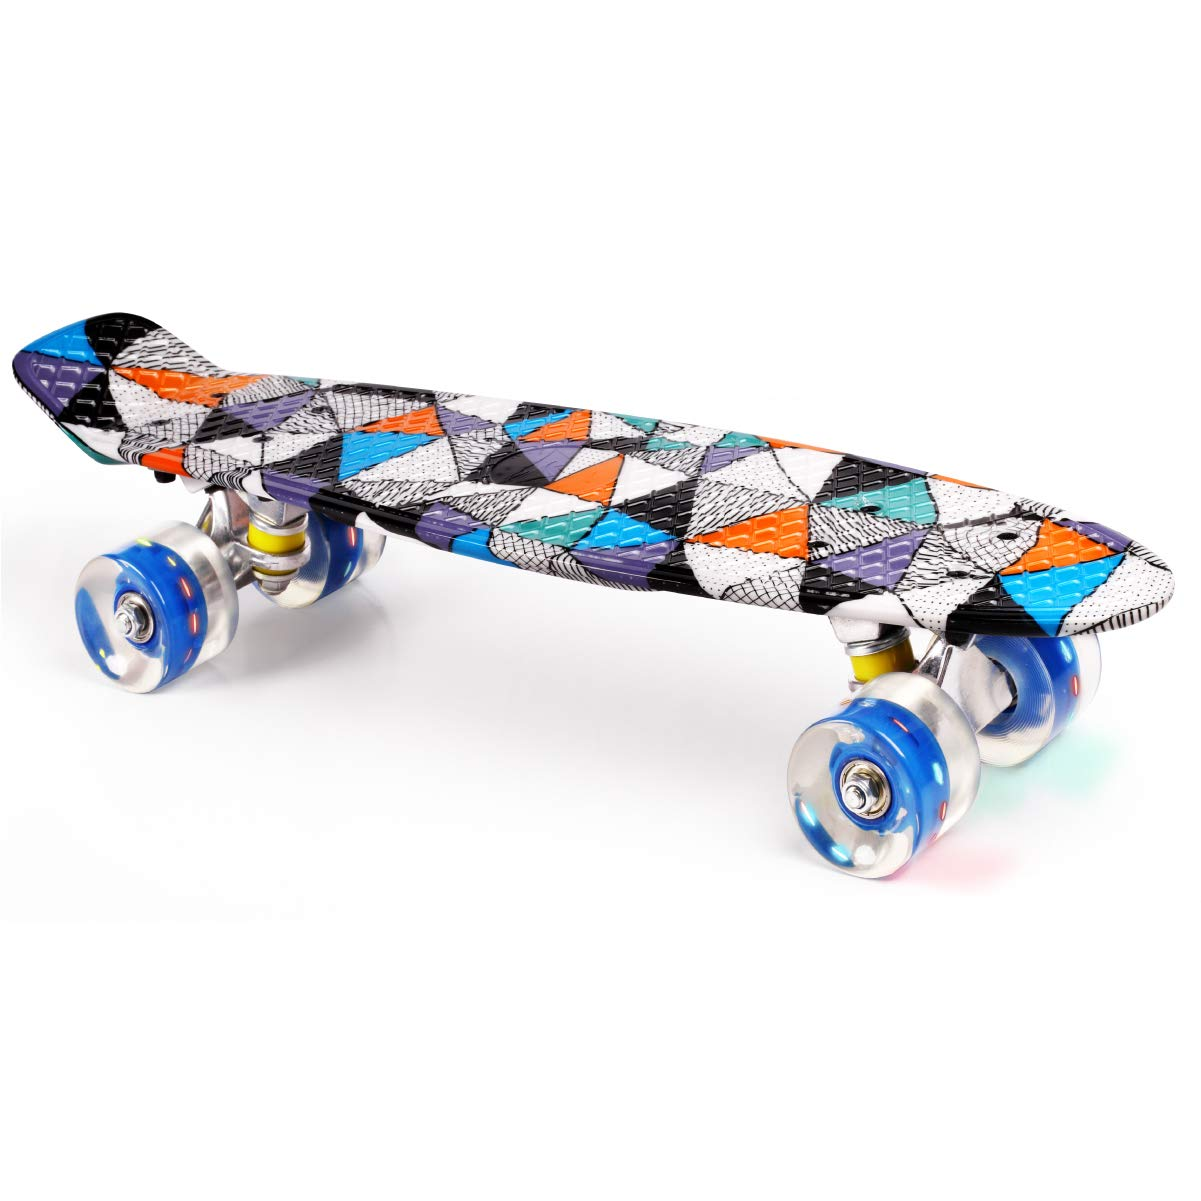 Merkapa 22'' Complete Skateboard with Colorful LED Light Up Wheels for Beginners (Triangle)